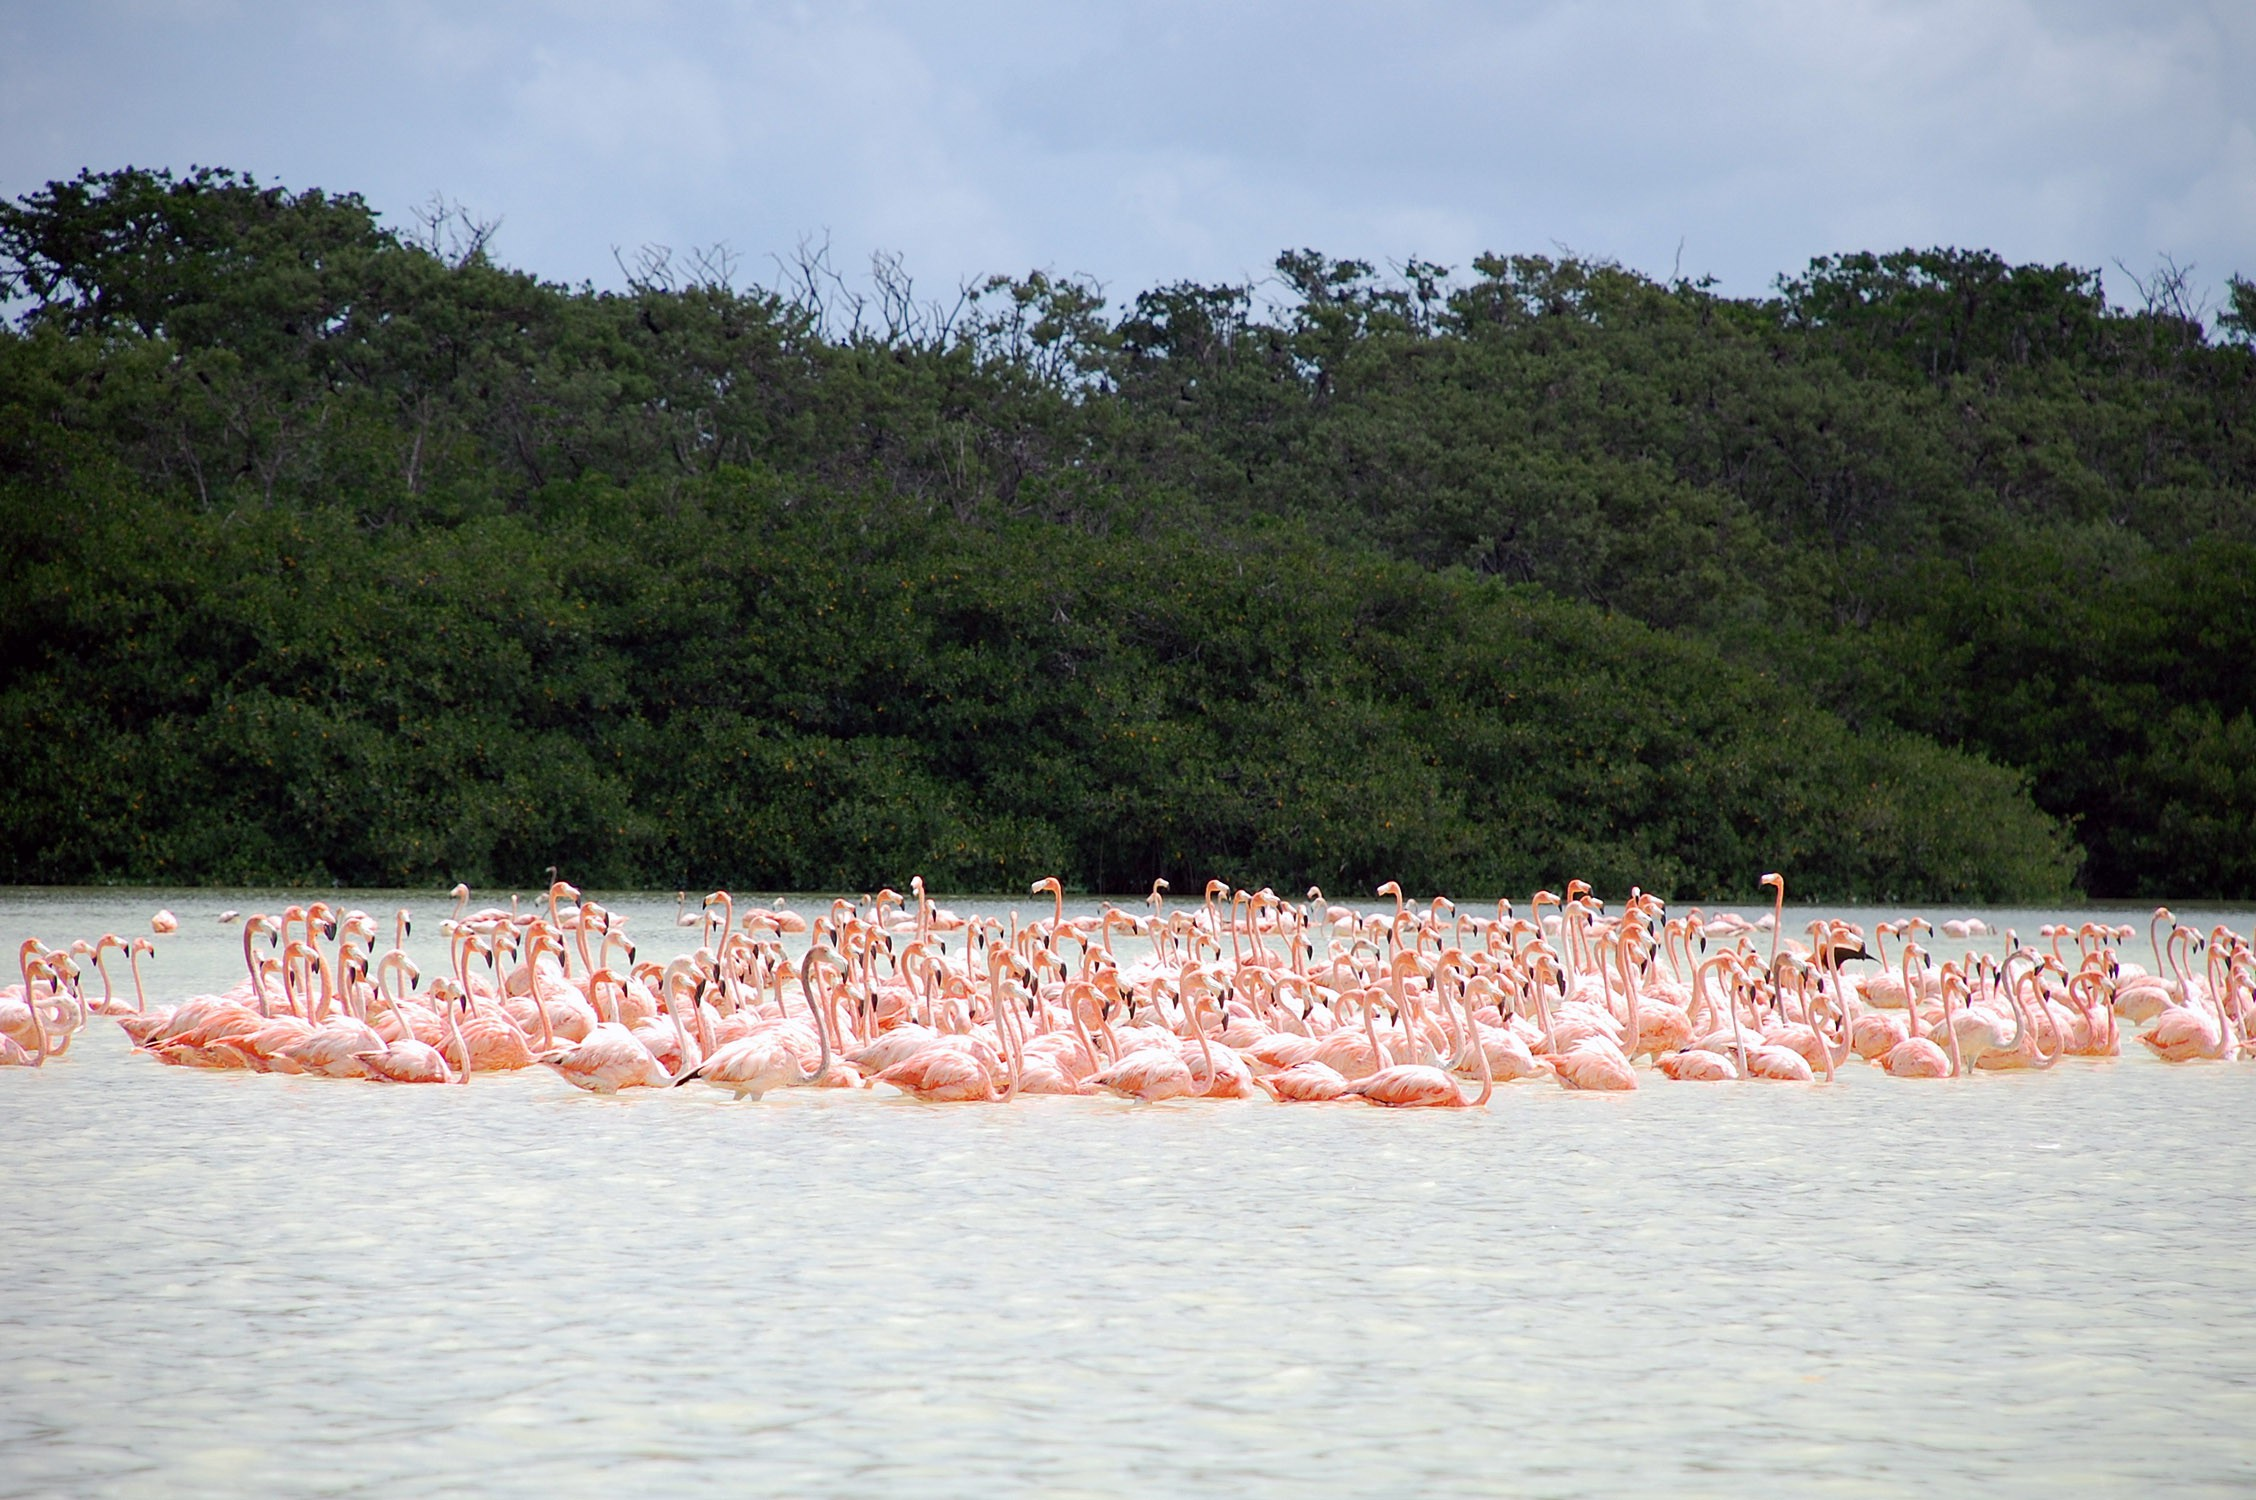 Flamingos in Yucatán | © Peyri Herrera/Flickr